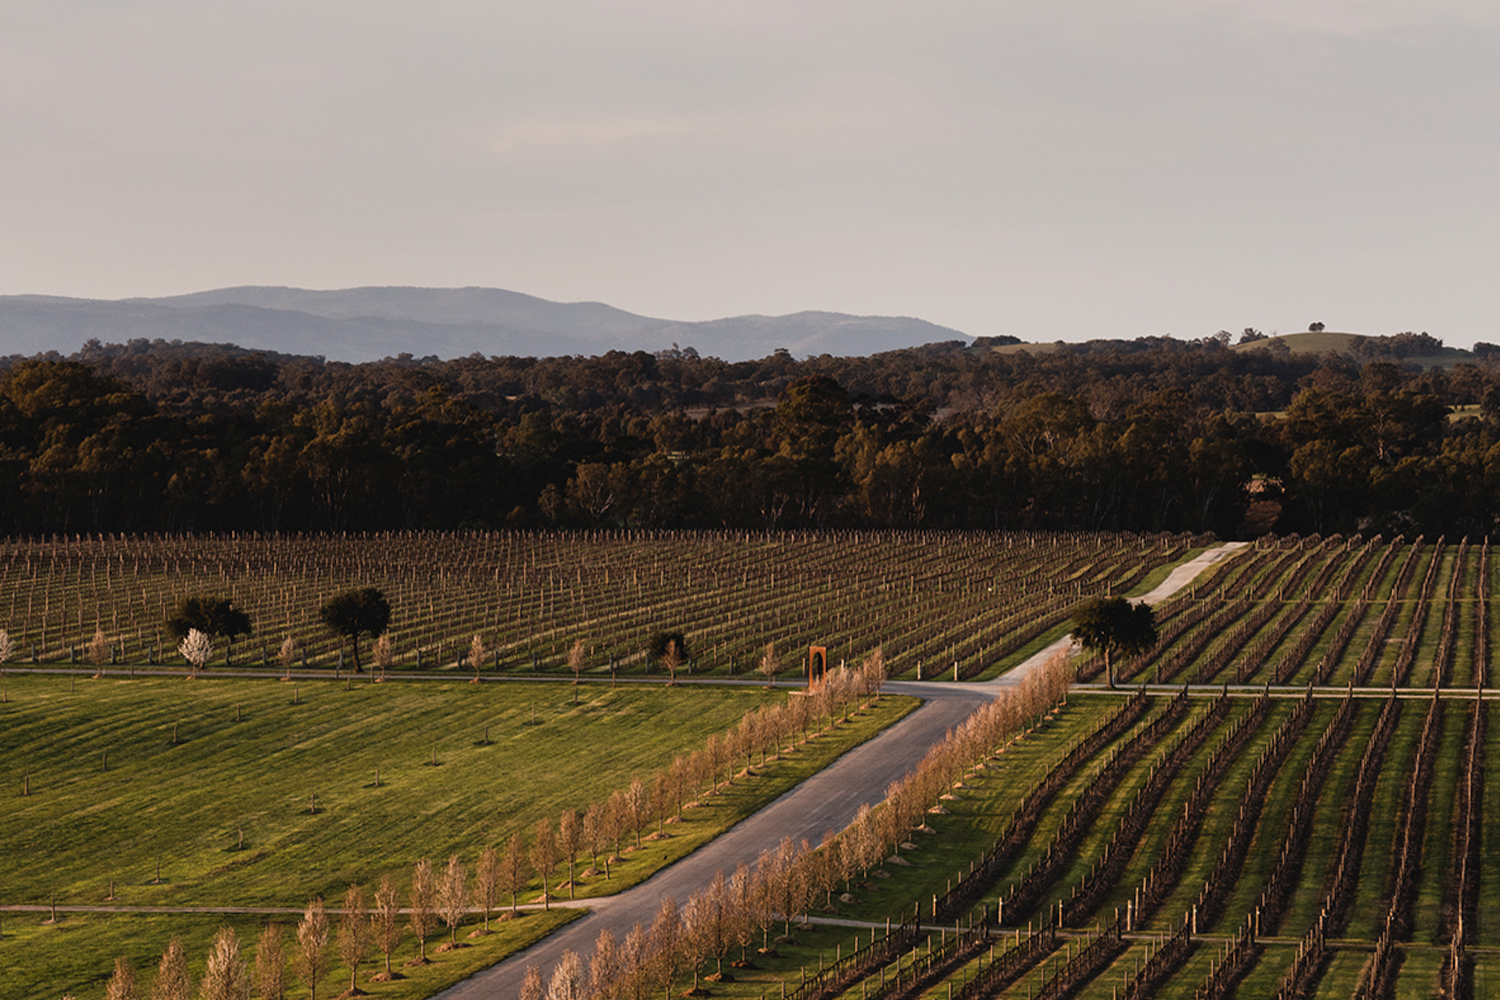 Spectular vineyards at Mitchelton Winery